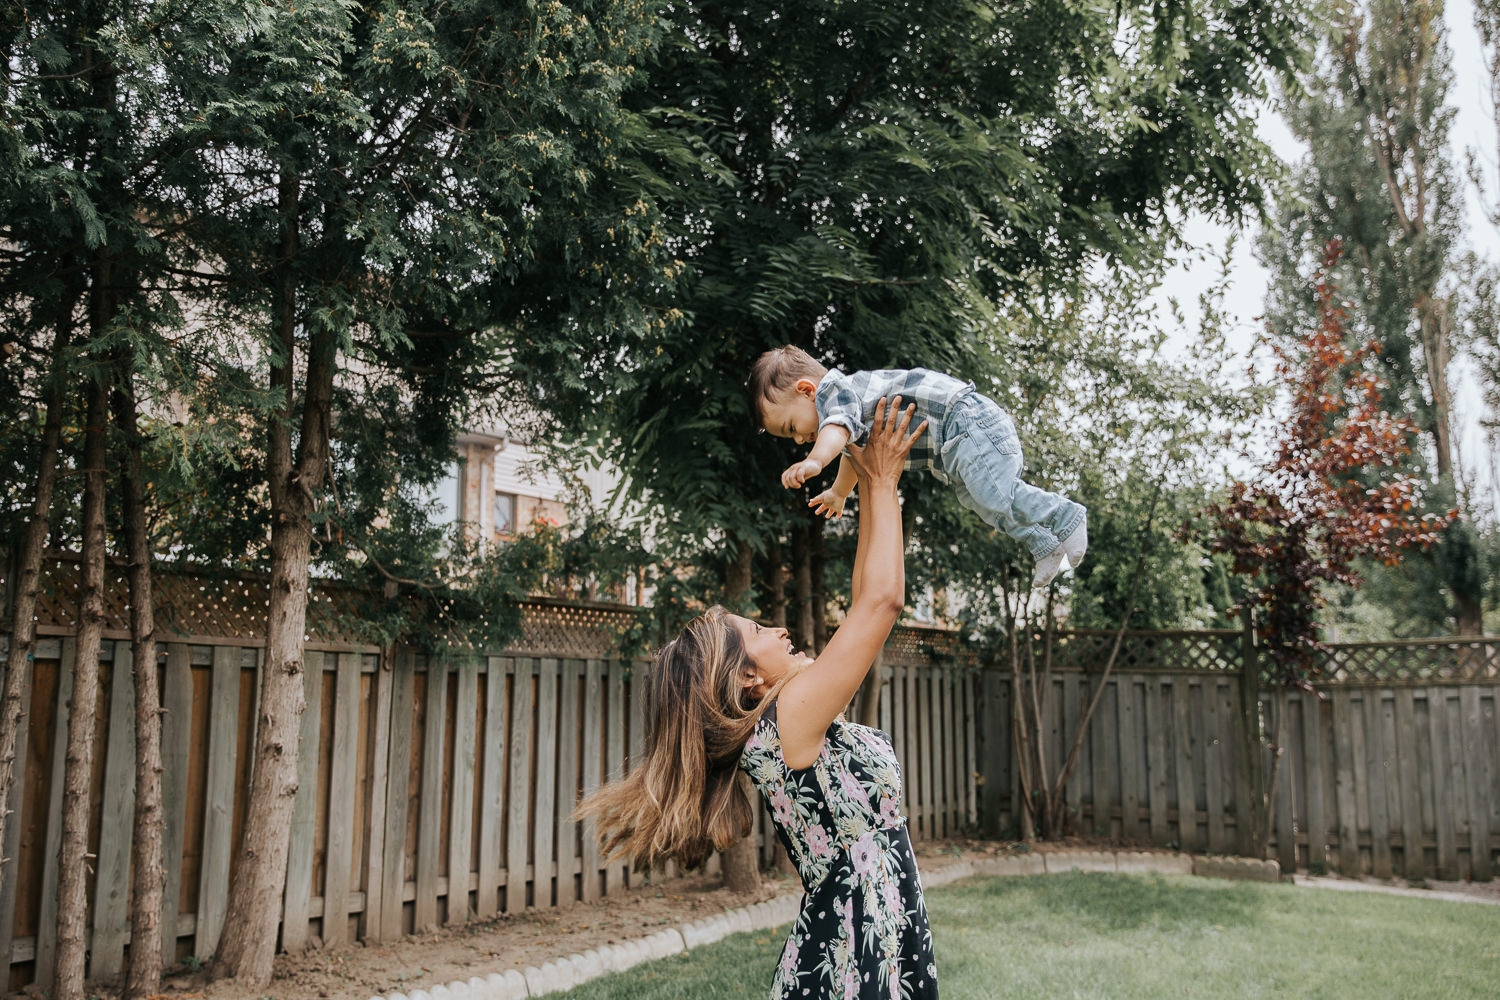 1 year old baby boy with dark hair in white and blue plaid shirt and jeans being thrown in air in backyard by mom - Newmarket Lifestyle Photography